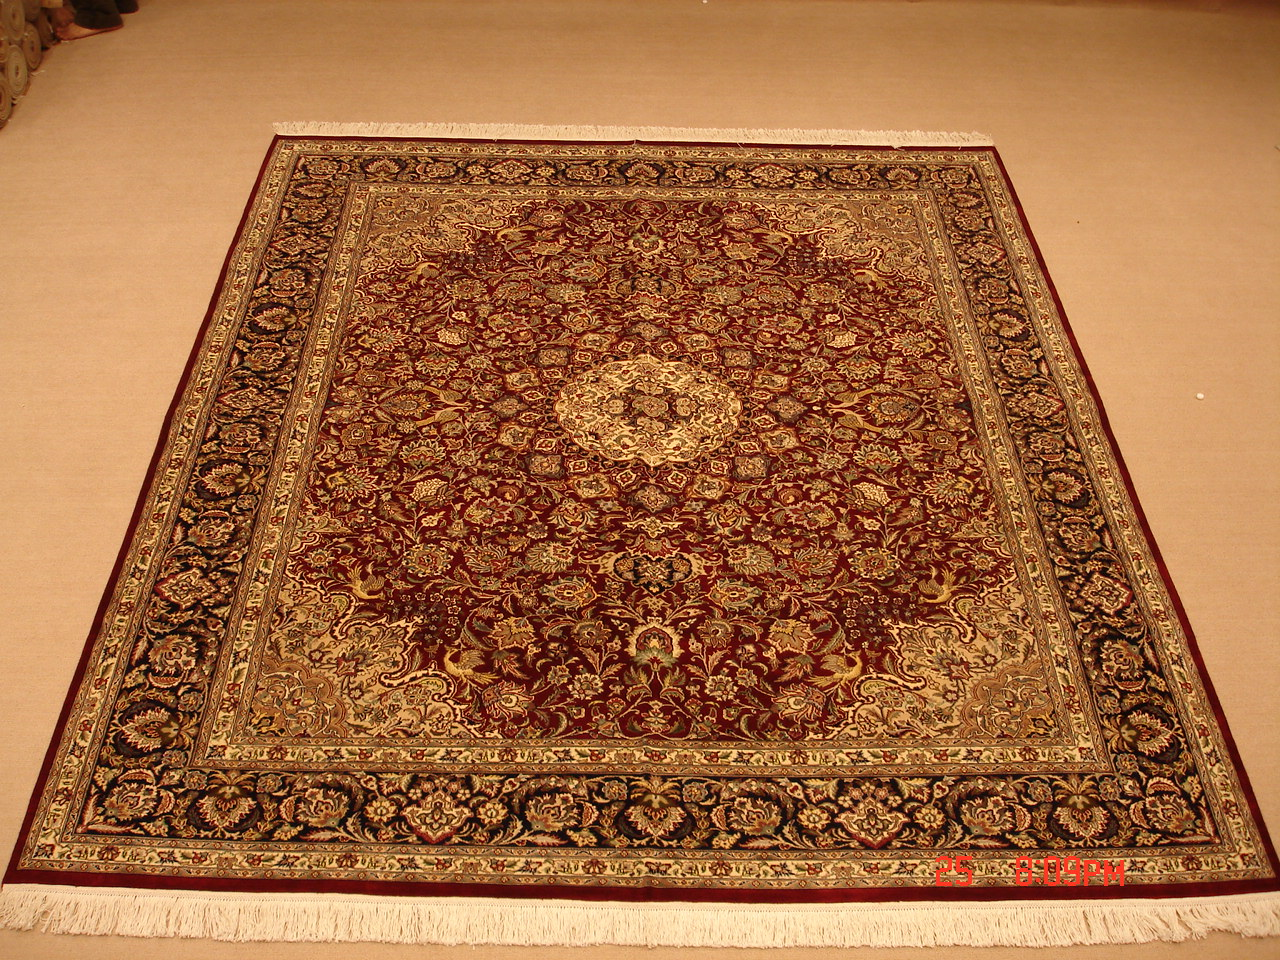 6 carpet designs in pakistan india house designs for Indian carpet designs